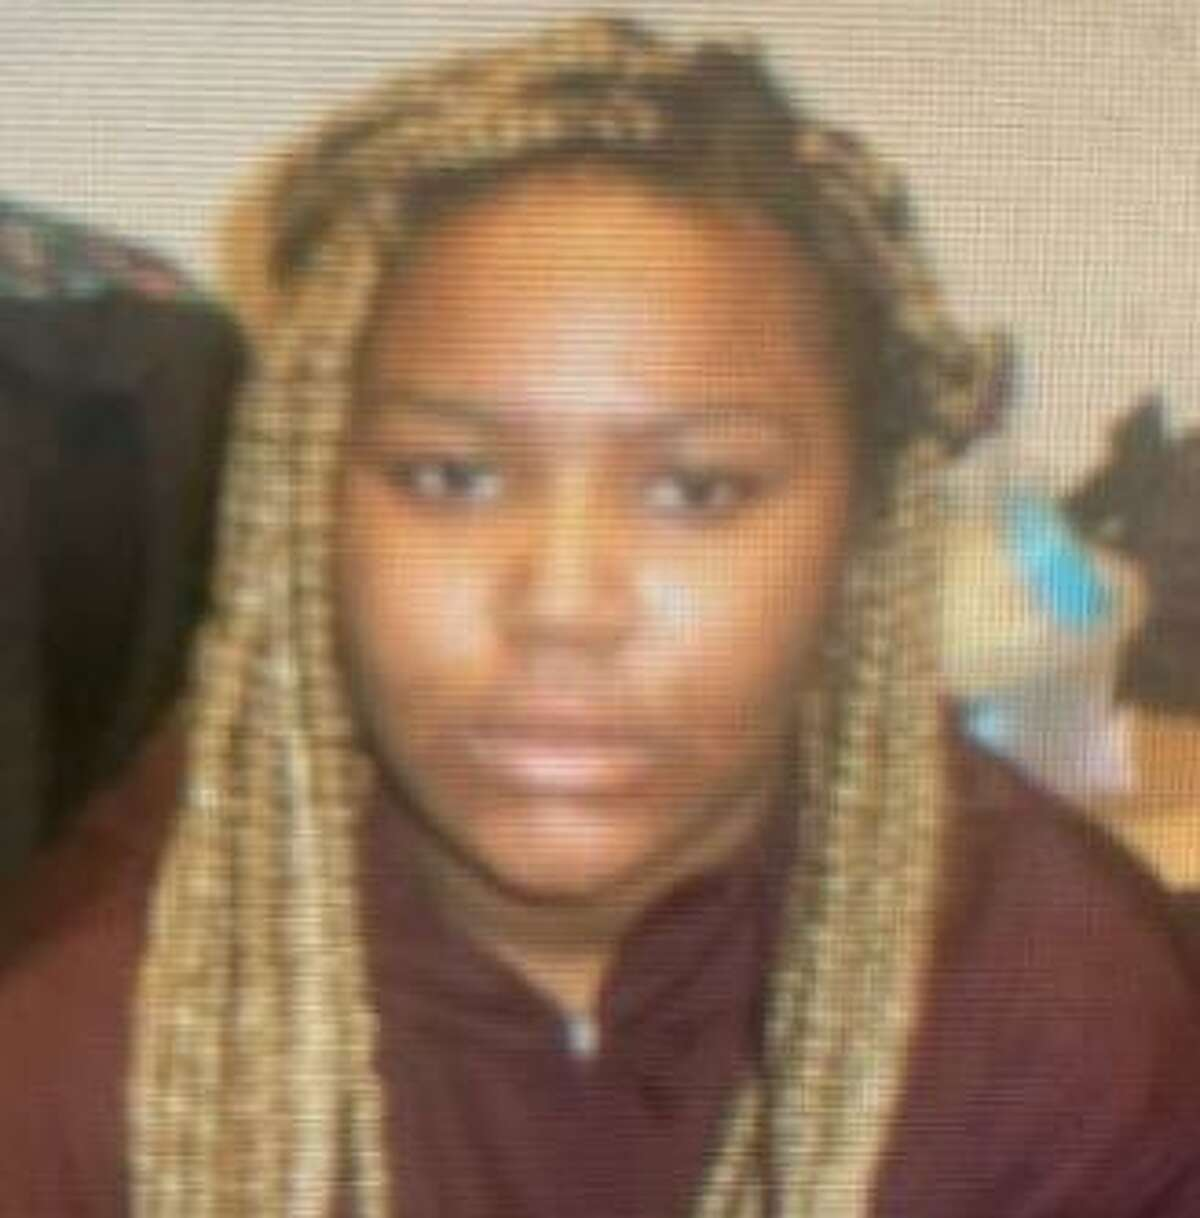 Sydney Renee Roswess, 15, was last seen at Kids in Crisis on Sunday, Jan. 24, 2021.